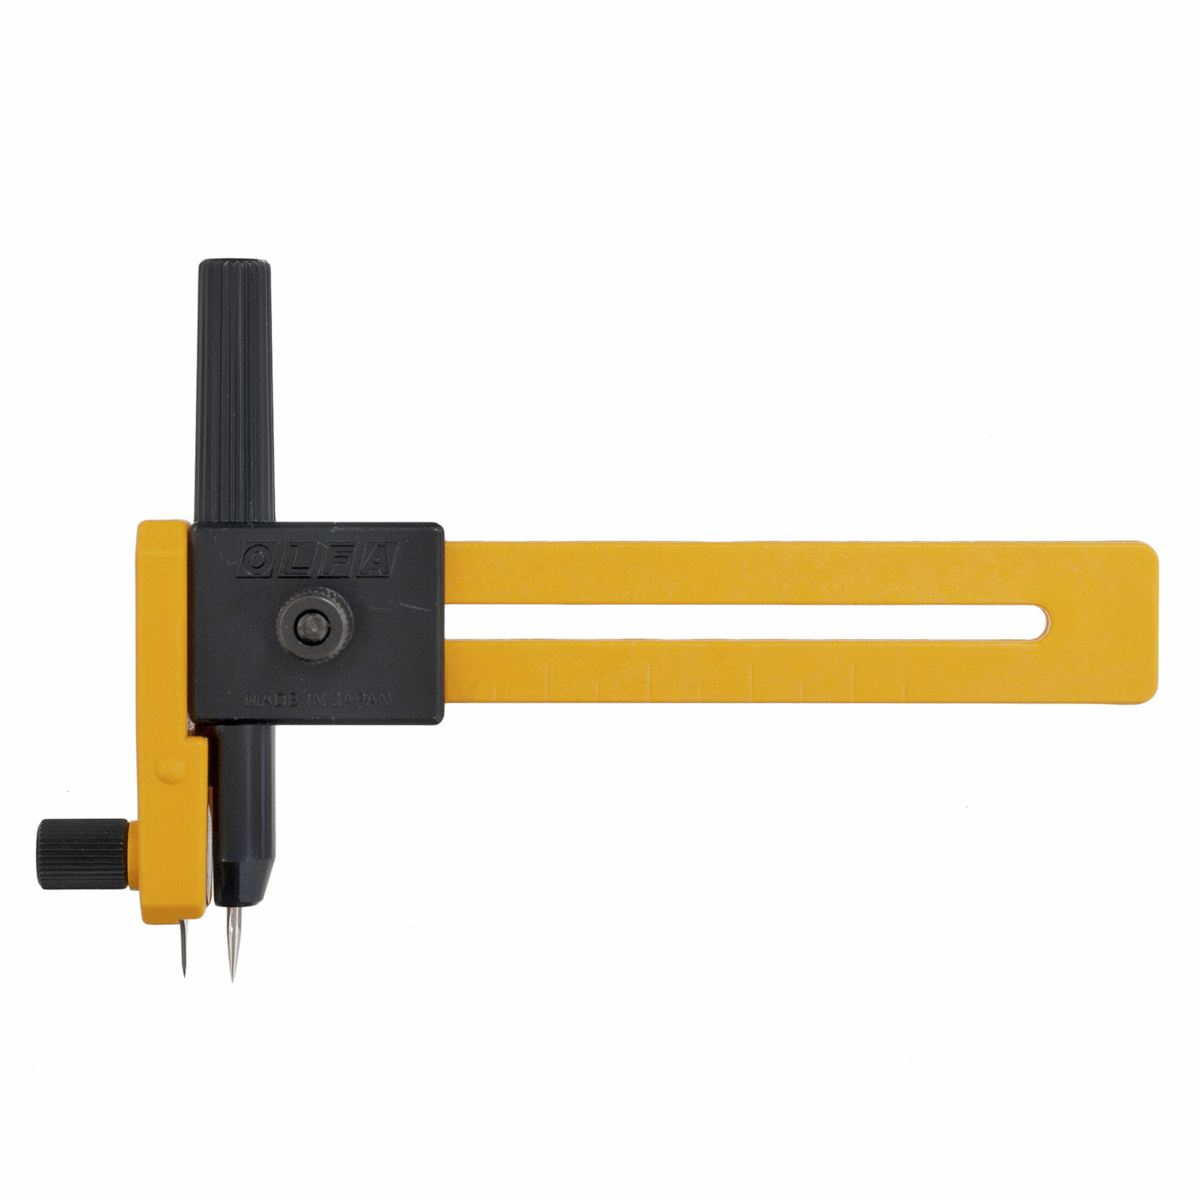 Picture of Compass Cutter: Up to 15cm/6in